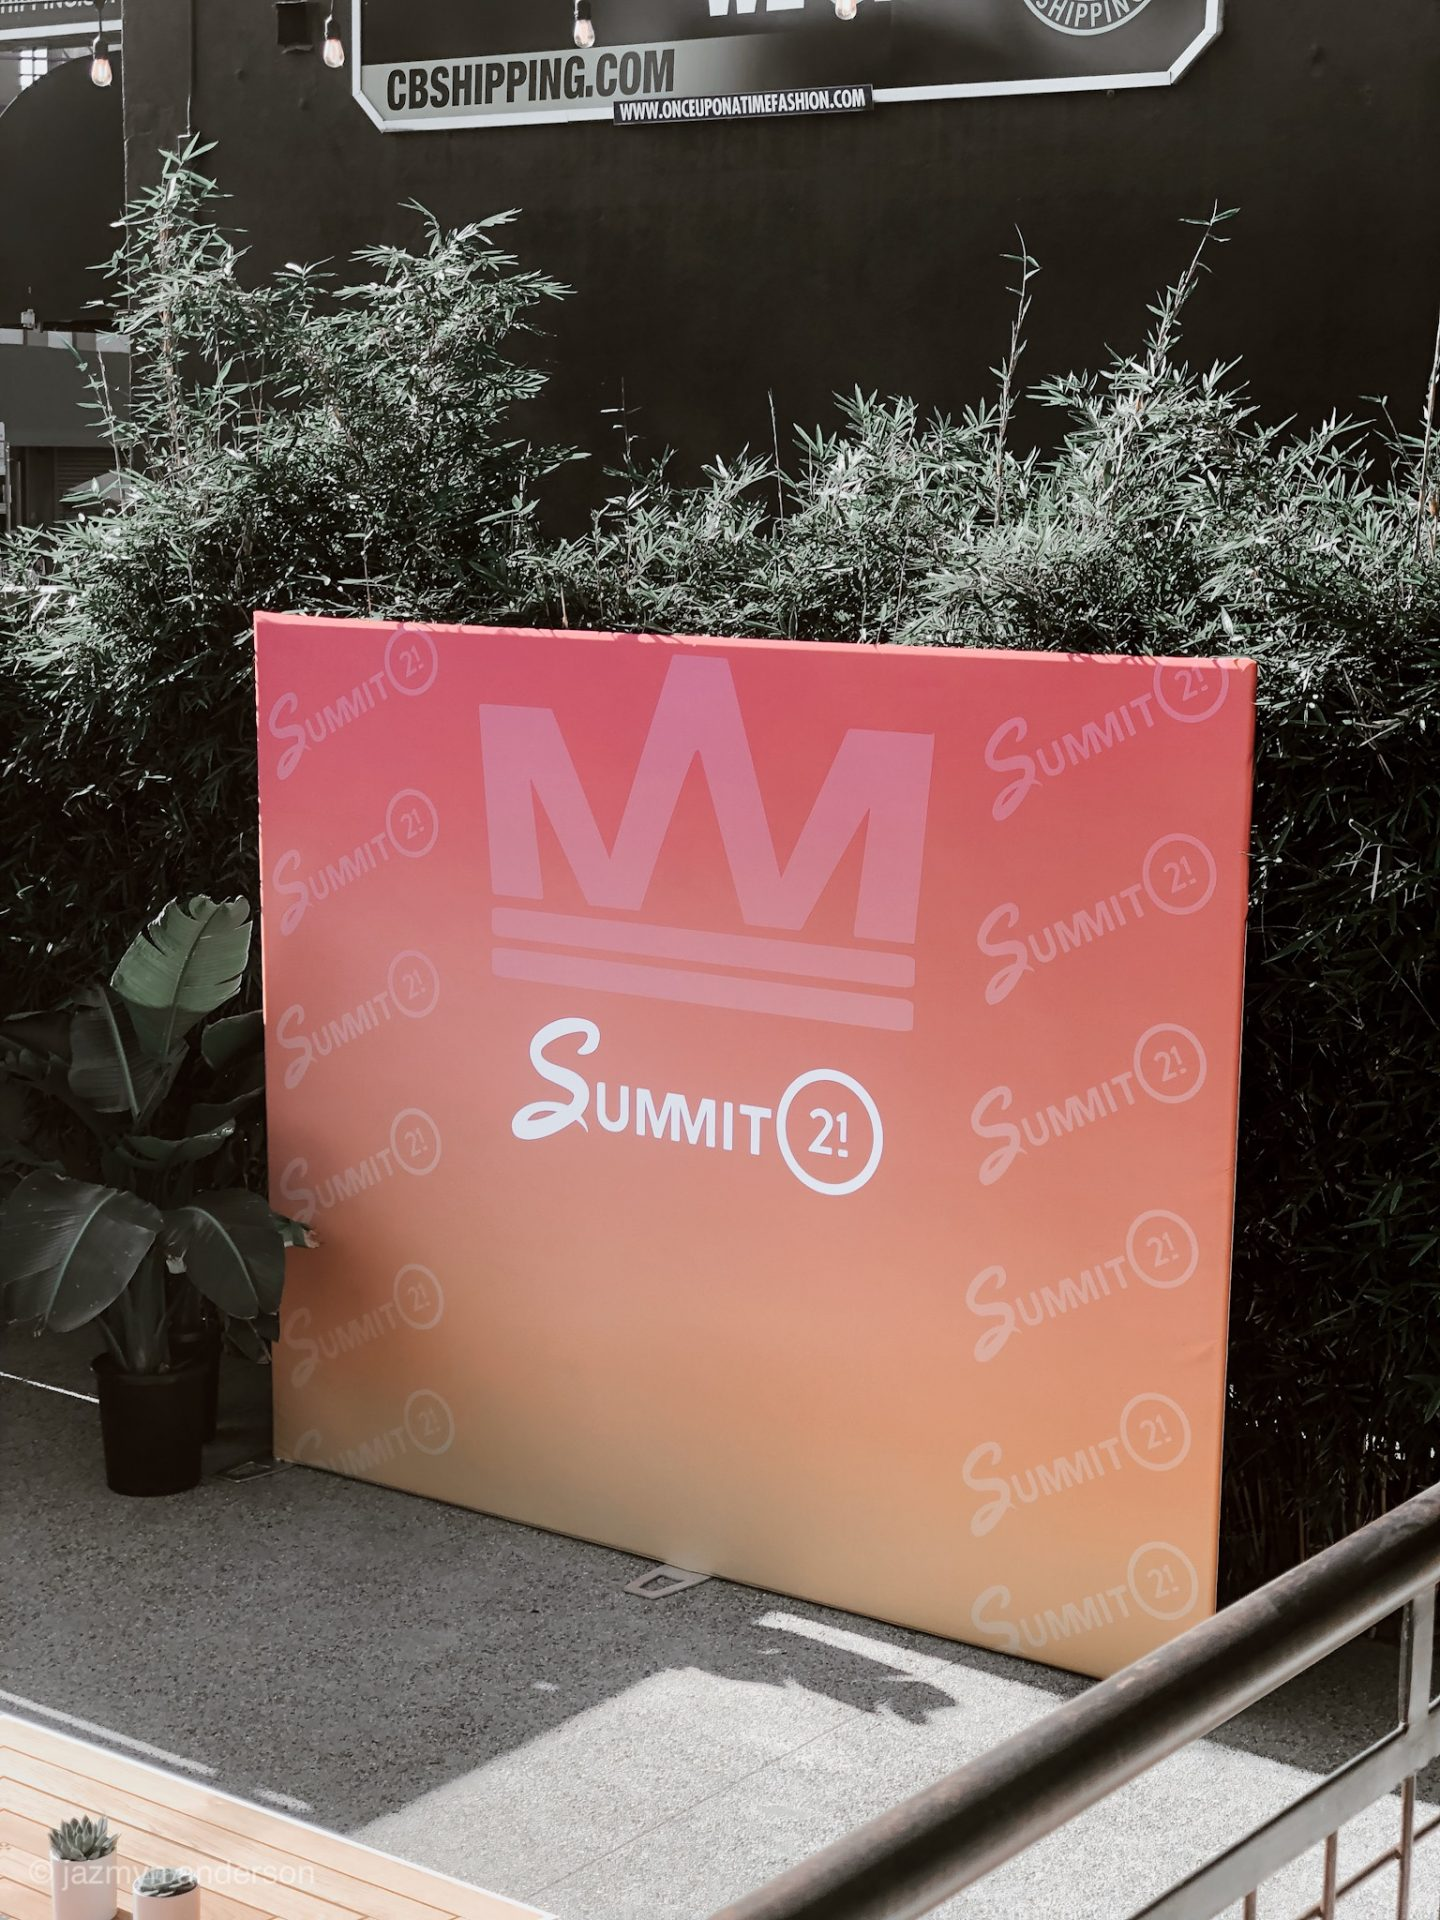 #Summit21LA Conference Recap